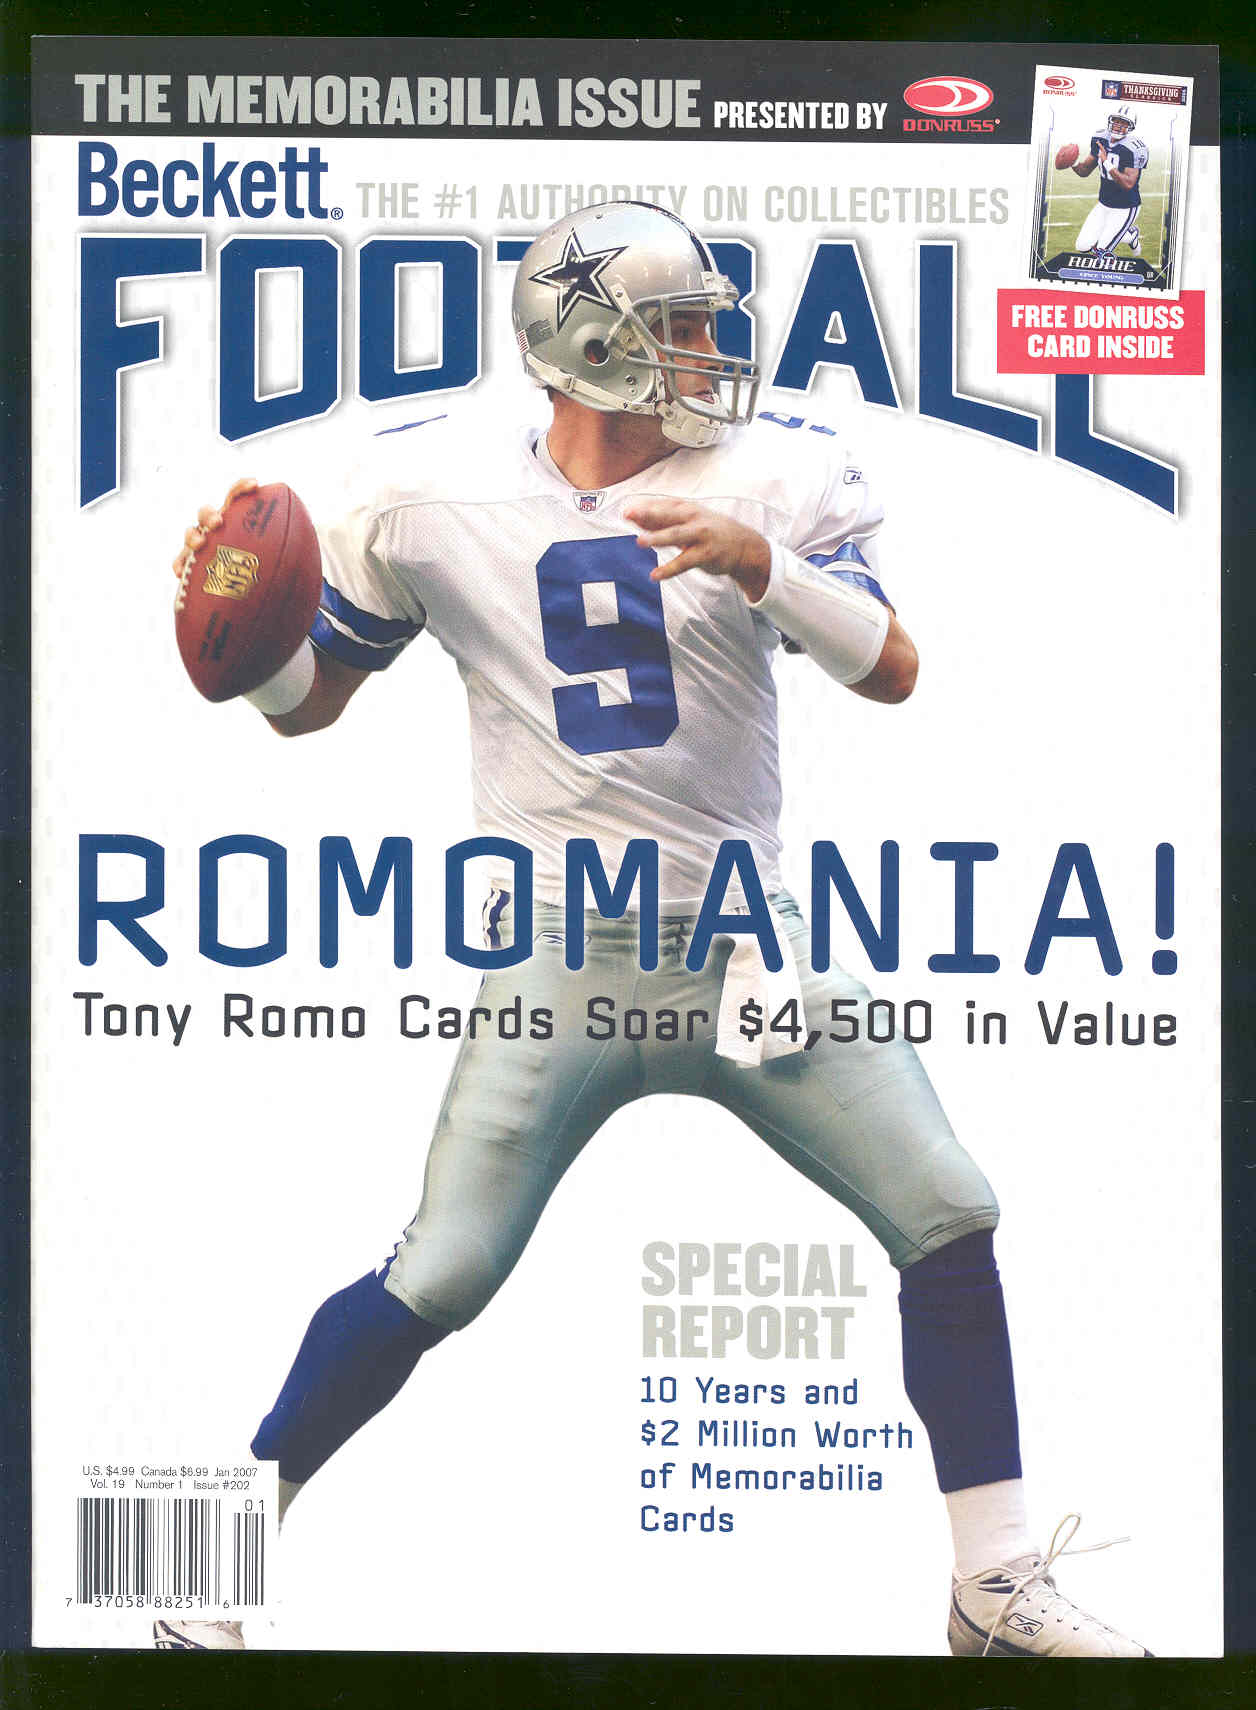 January 2007 RARE Back Issue Beckett Football Tony Romo Cowboys Rookie Issue #202 Including a special issue Donruss Thanksgiving Classics Reggie Bush Saints #1 Rookie Card Inside